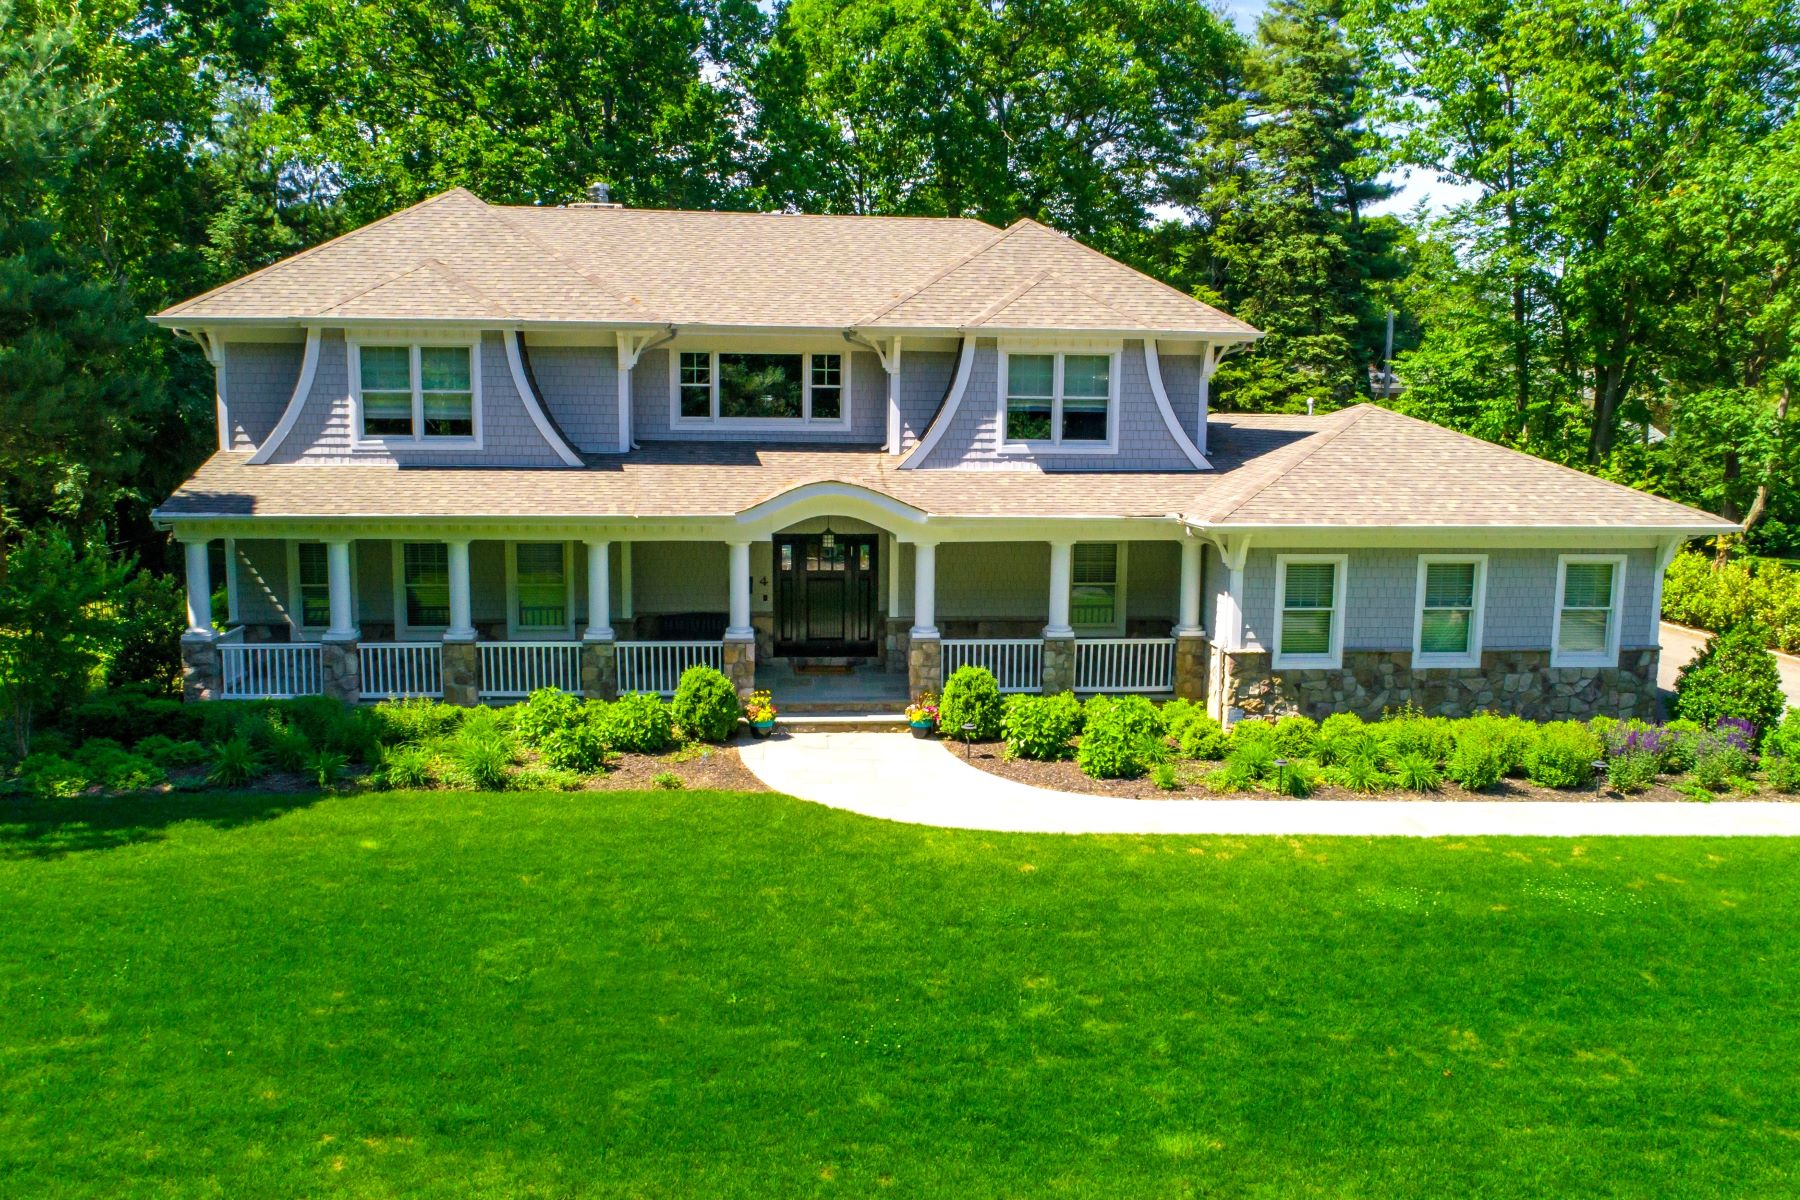 Single Family Homes for Active at East Hills 4 Melby Ln East Hills, New York 11576 United States